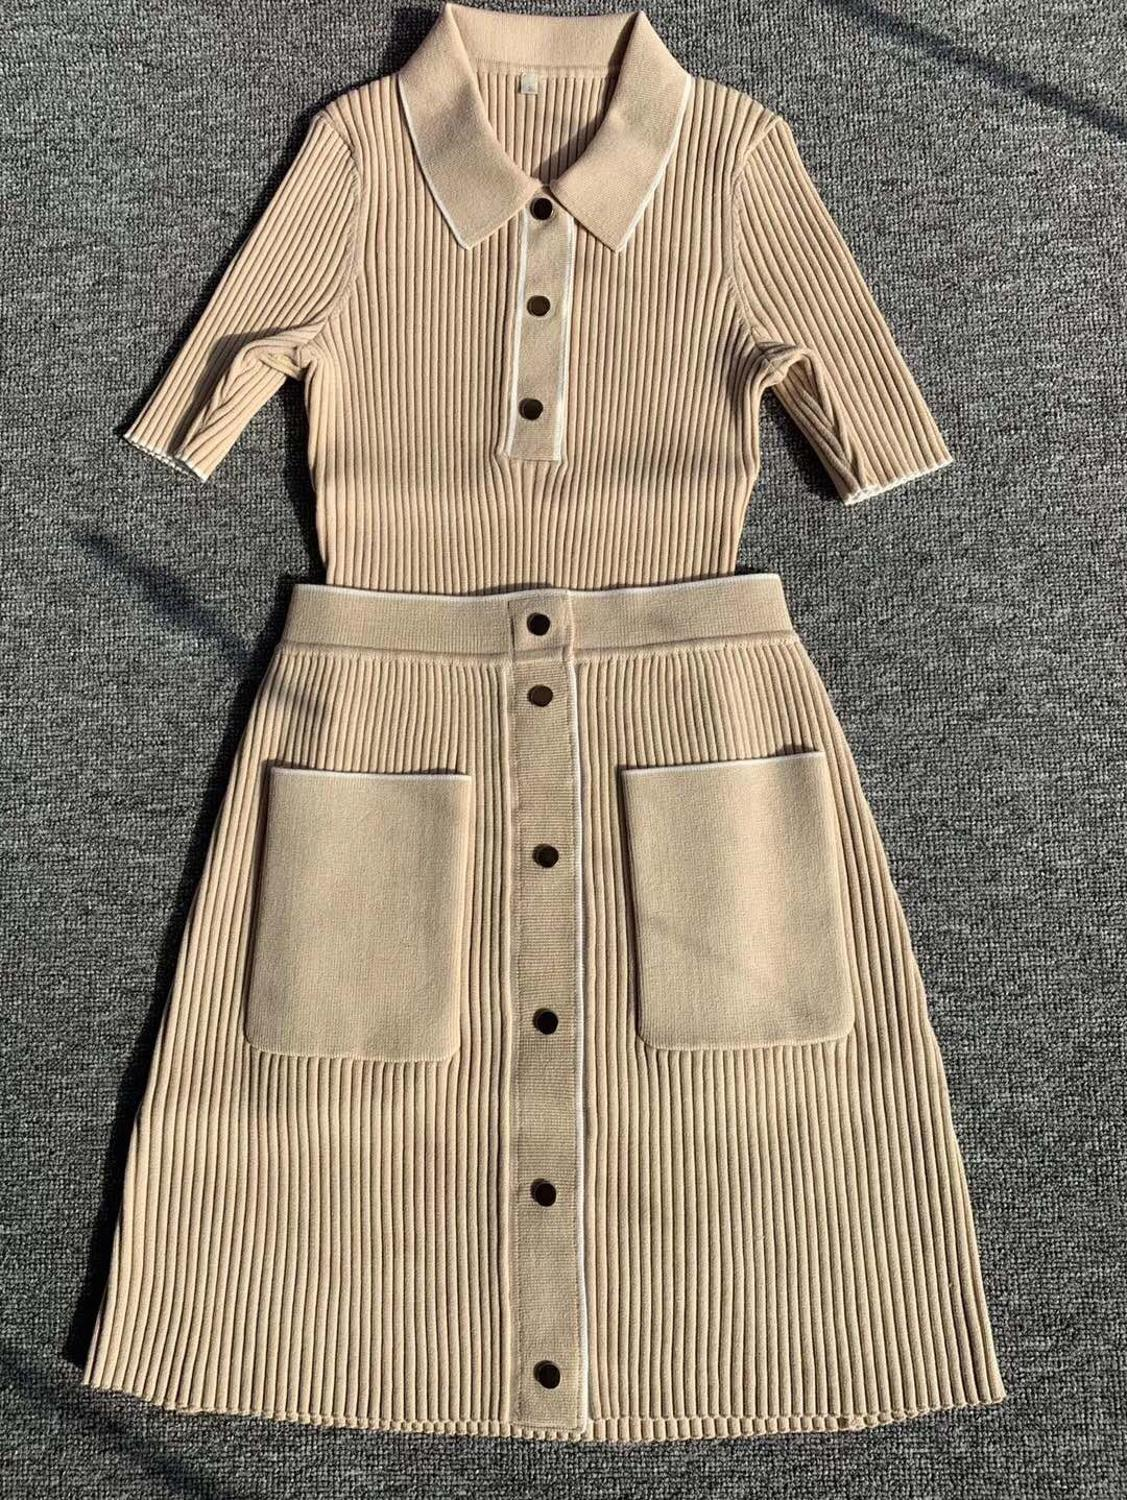 Early Spring Knitted Sweater Short-sleeved  Slim Dark Buckle Knit Top And Skirt Suit Spring Autumn Knitwear